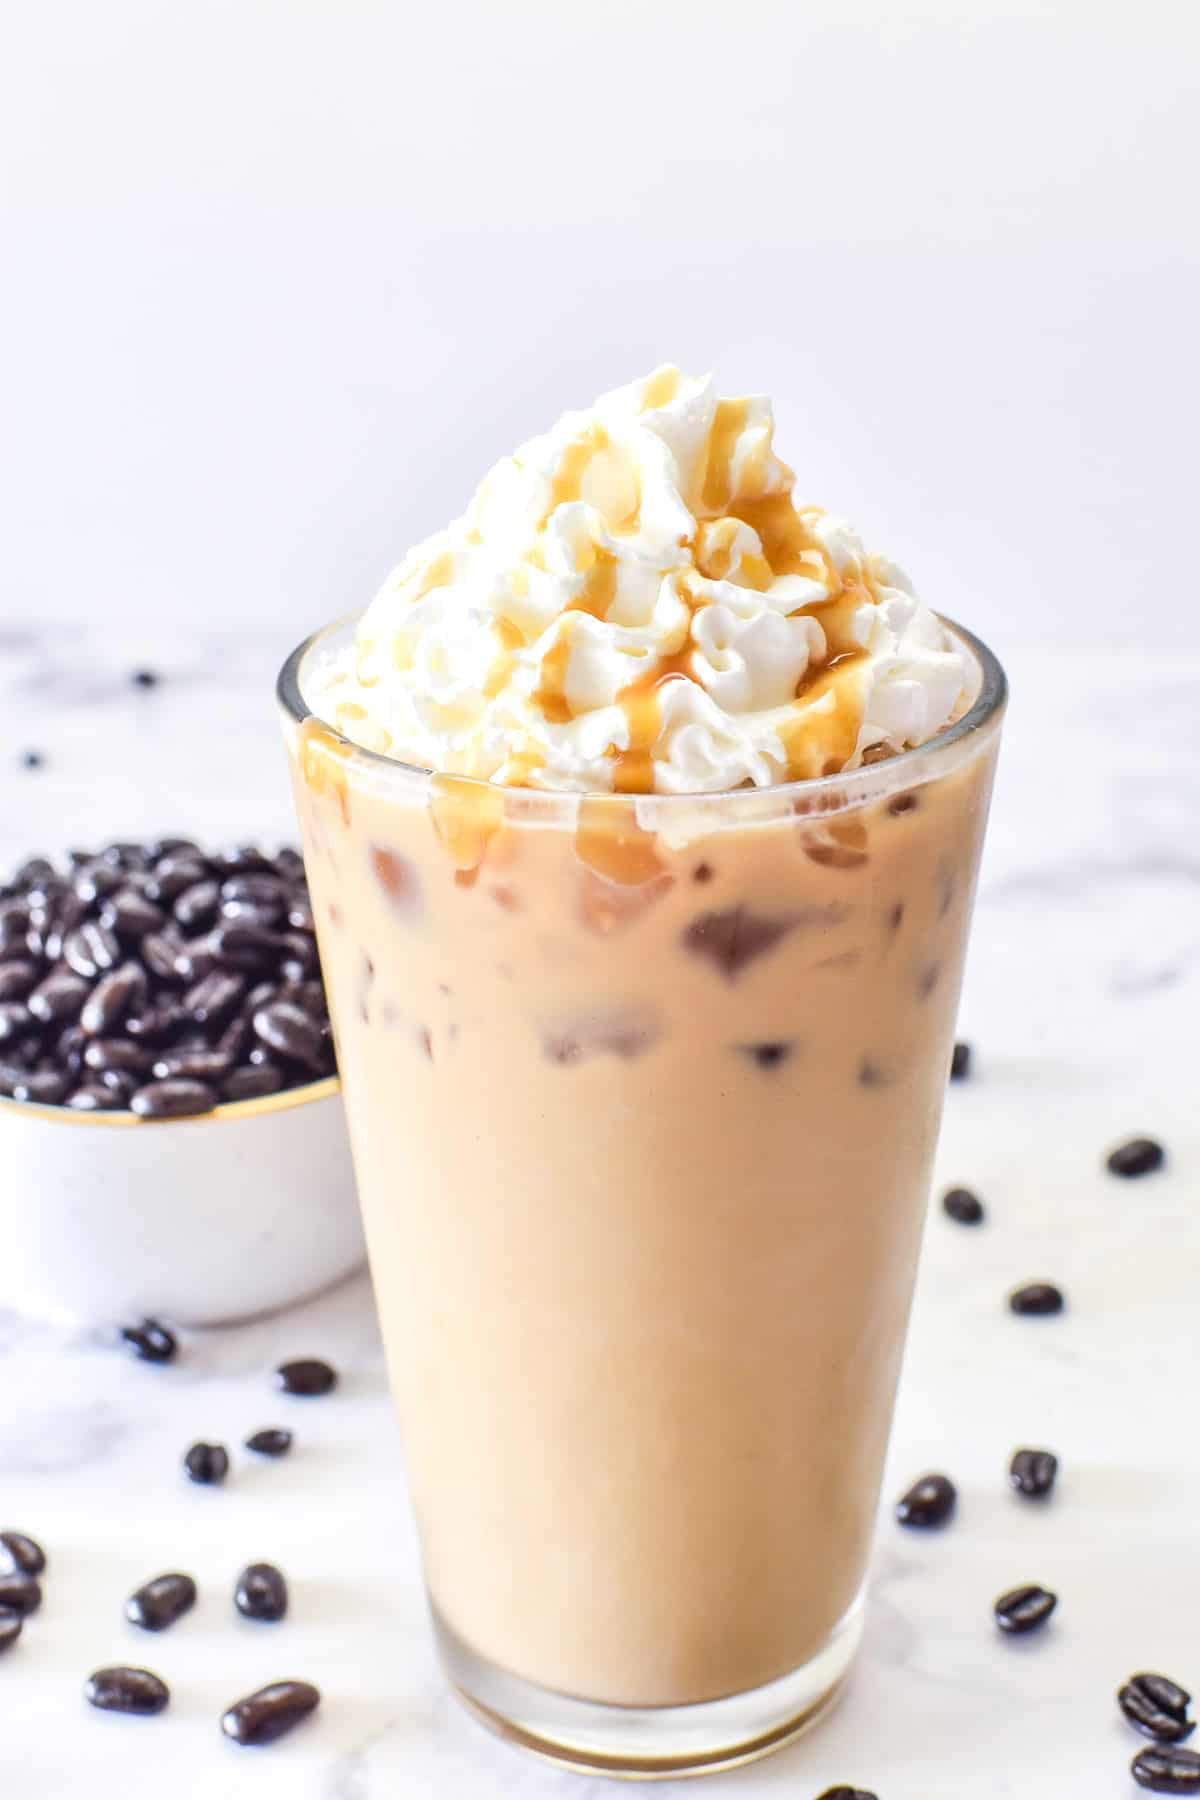 Close up of Iced Latte with whipped cream and caramel